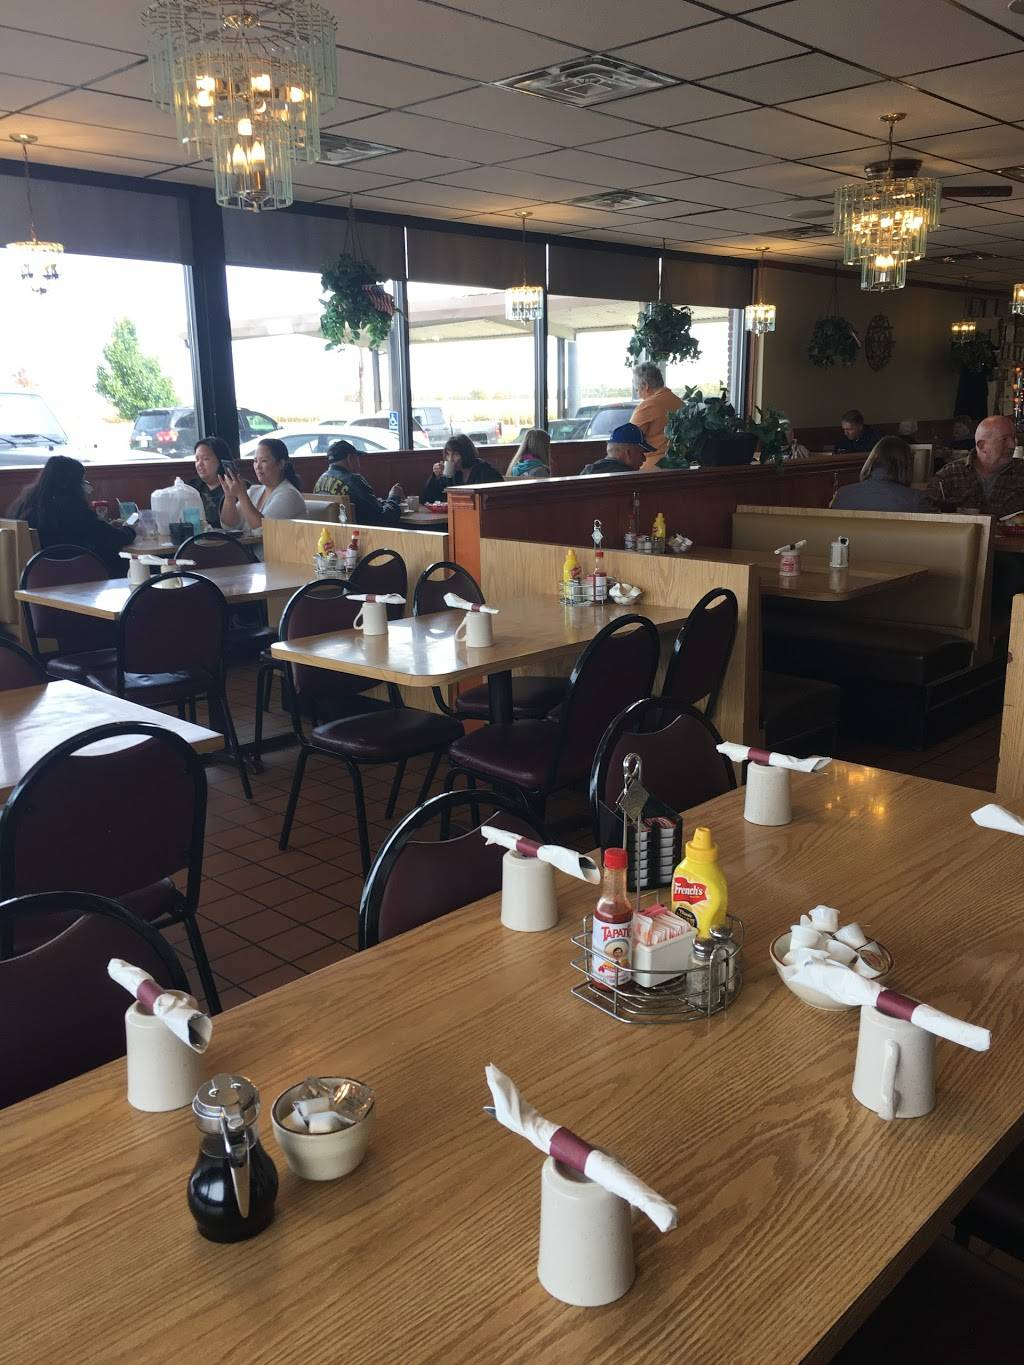 Four Star Family Restaurant | cafe | 1340 May Rd, Peru, IL 61354, USA | 8152236511 OR +1 815-223-6511